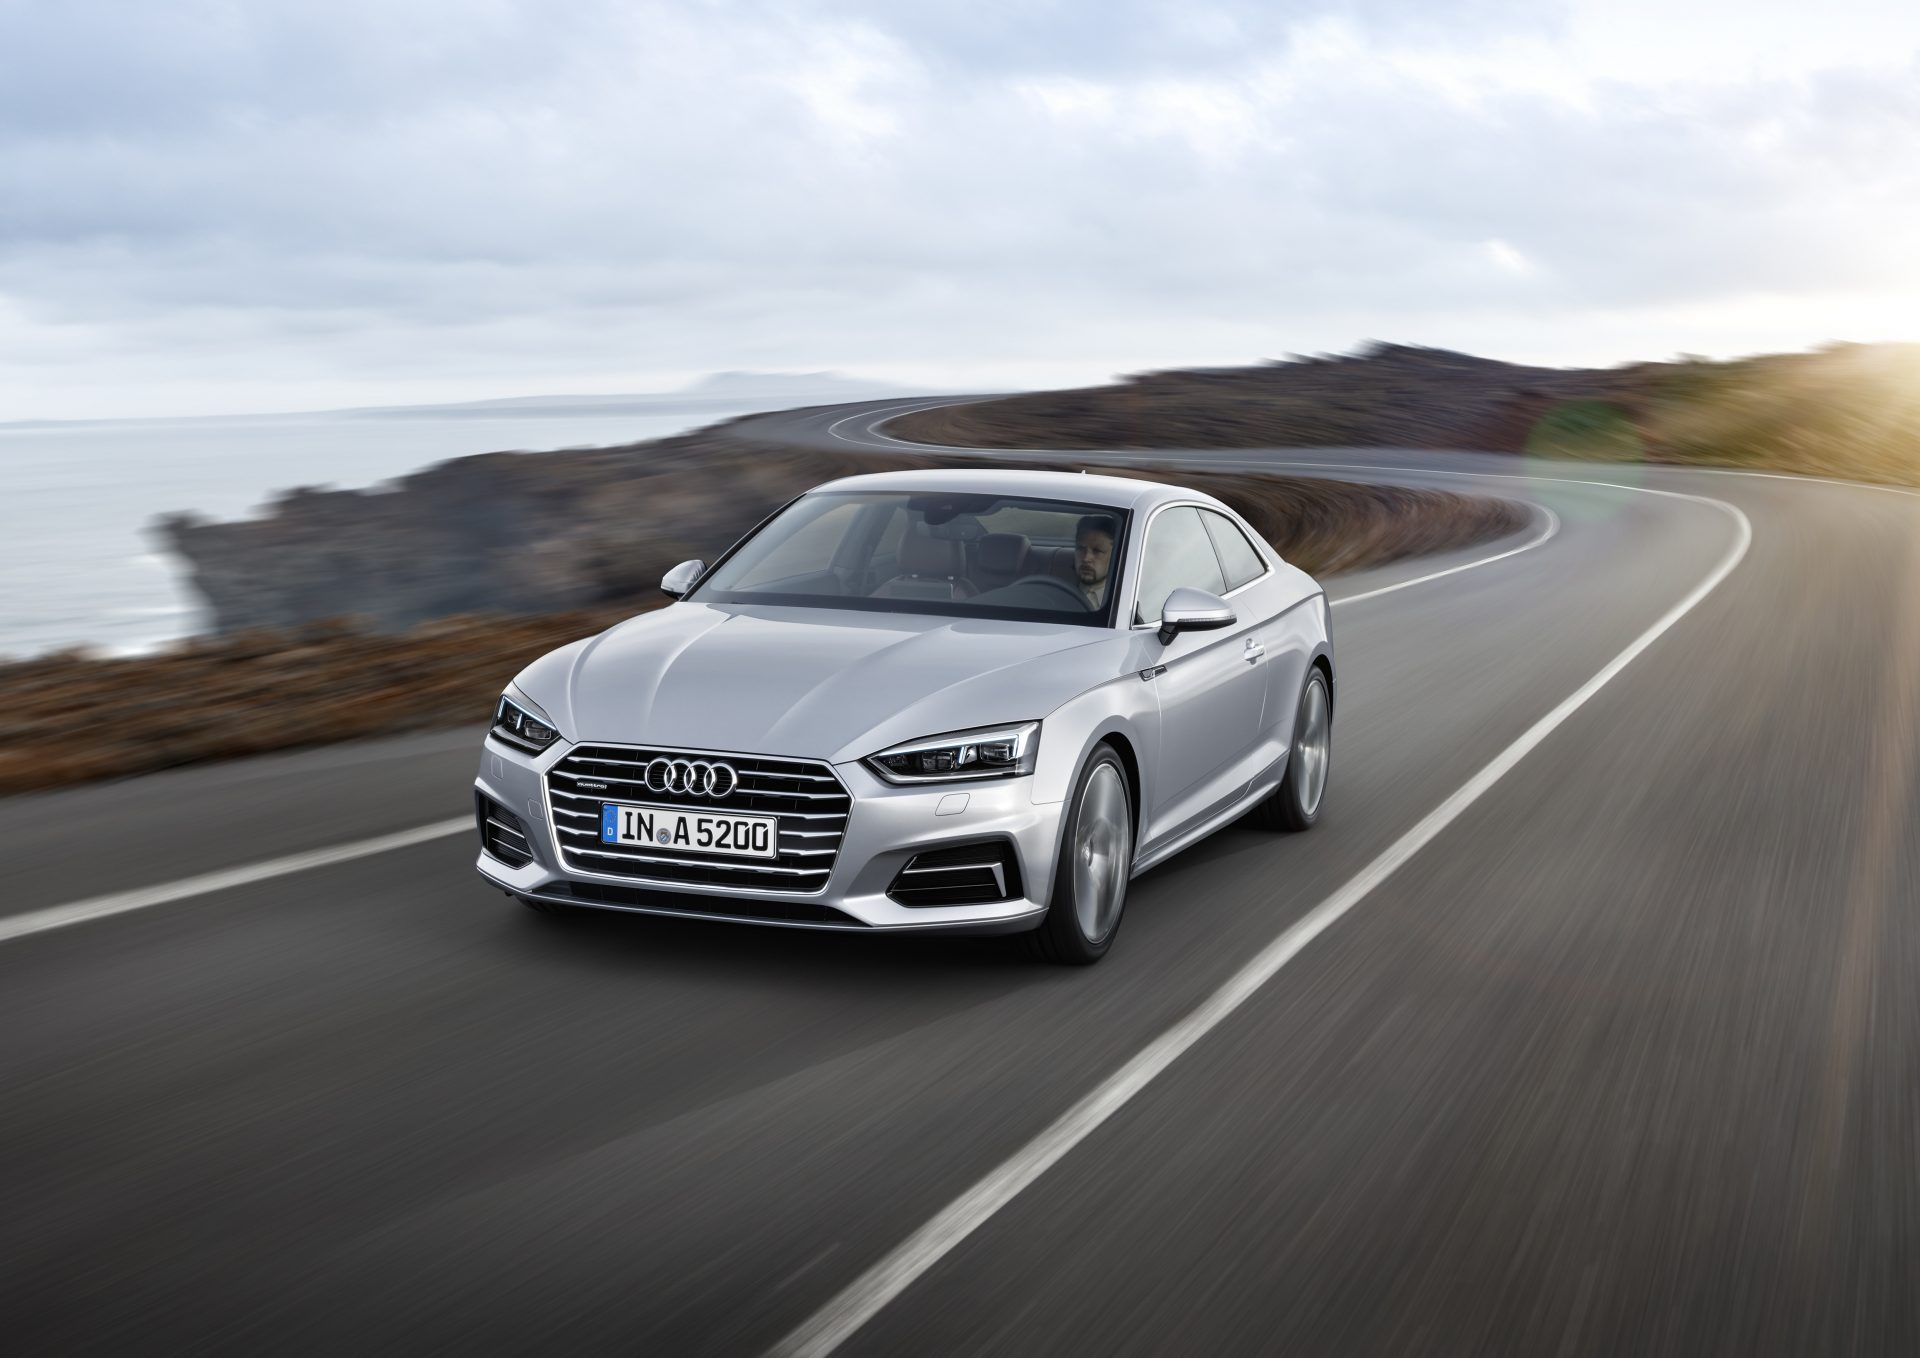 Car And Driver Tests The 2018 Audi A5 2 0t Coupe Http